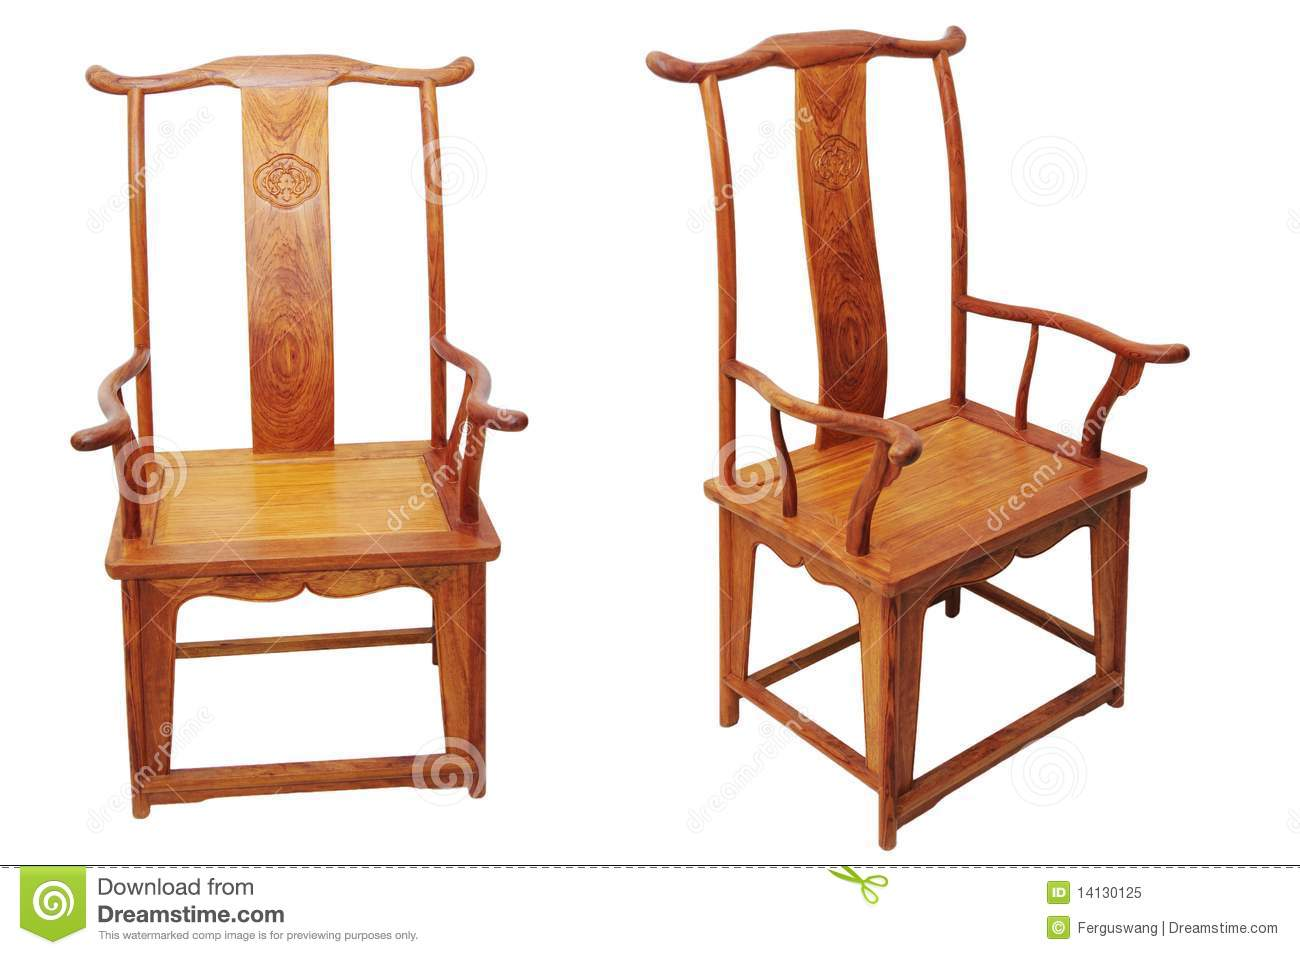 Antique furniture chair - Chinese Antique Furniture Chair On White Royalty Free Stock Photo